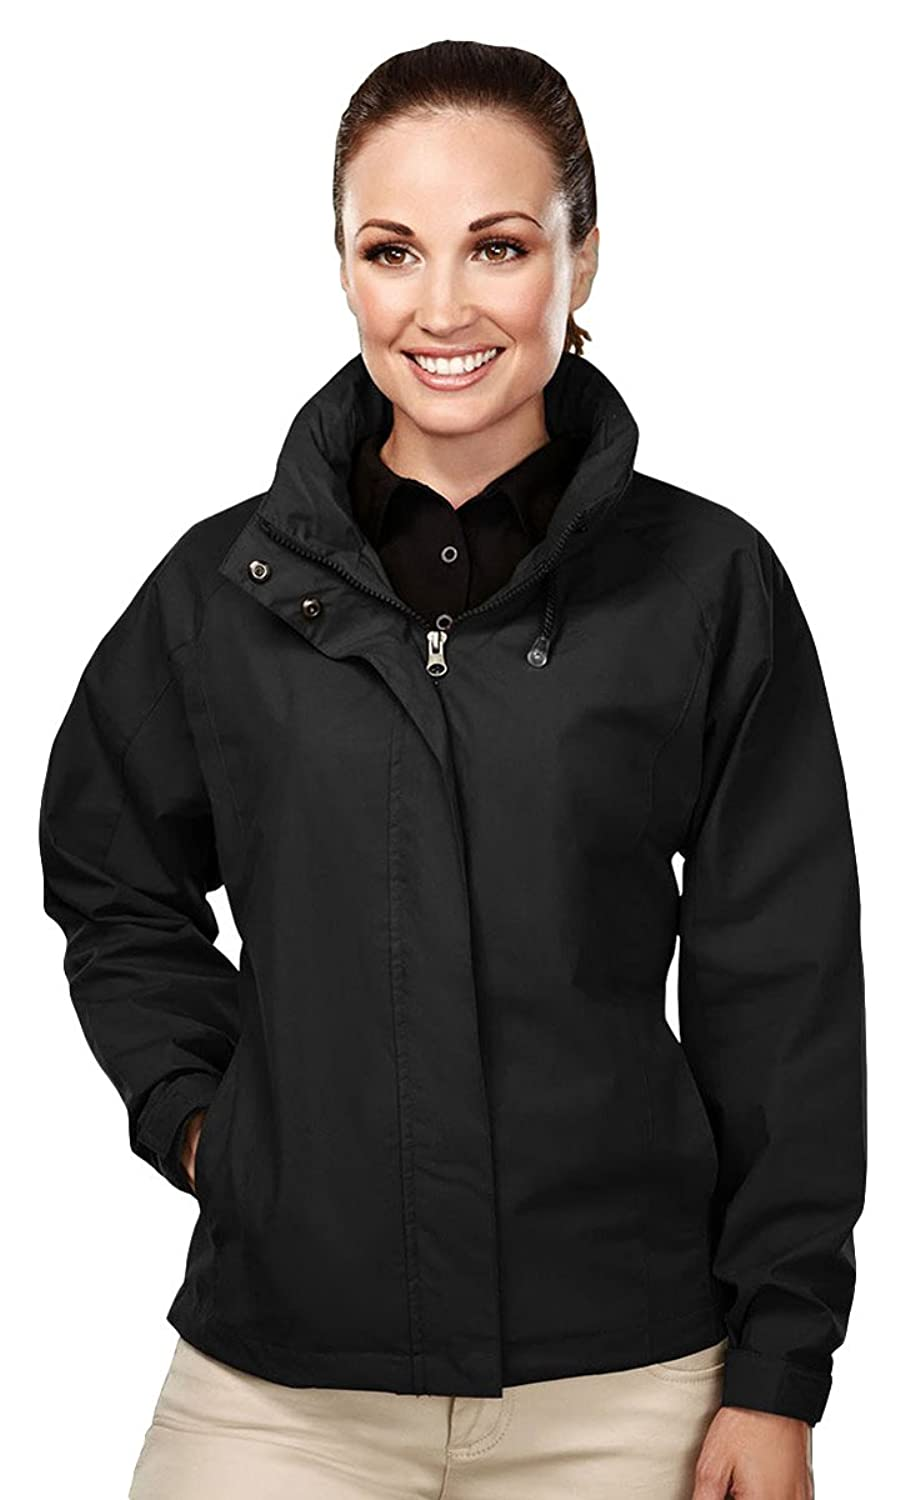 Tri-Mountain Women's Water Resistant Jacket 5320